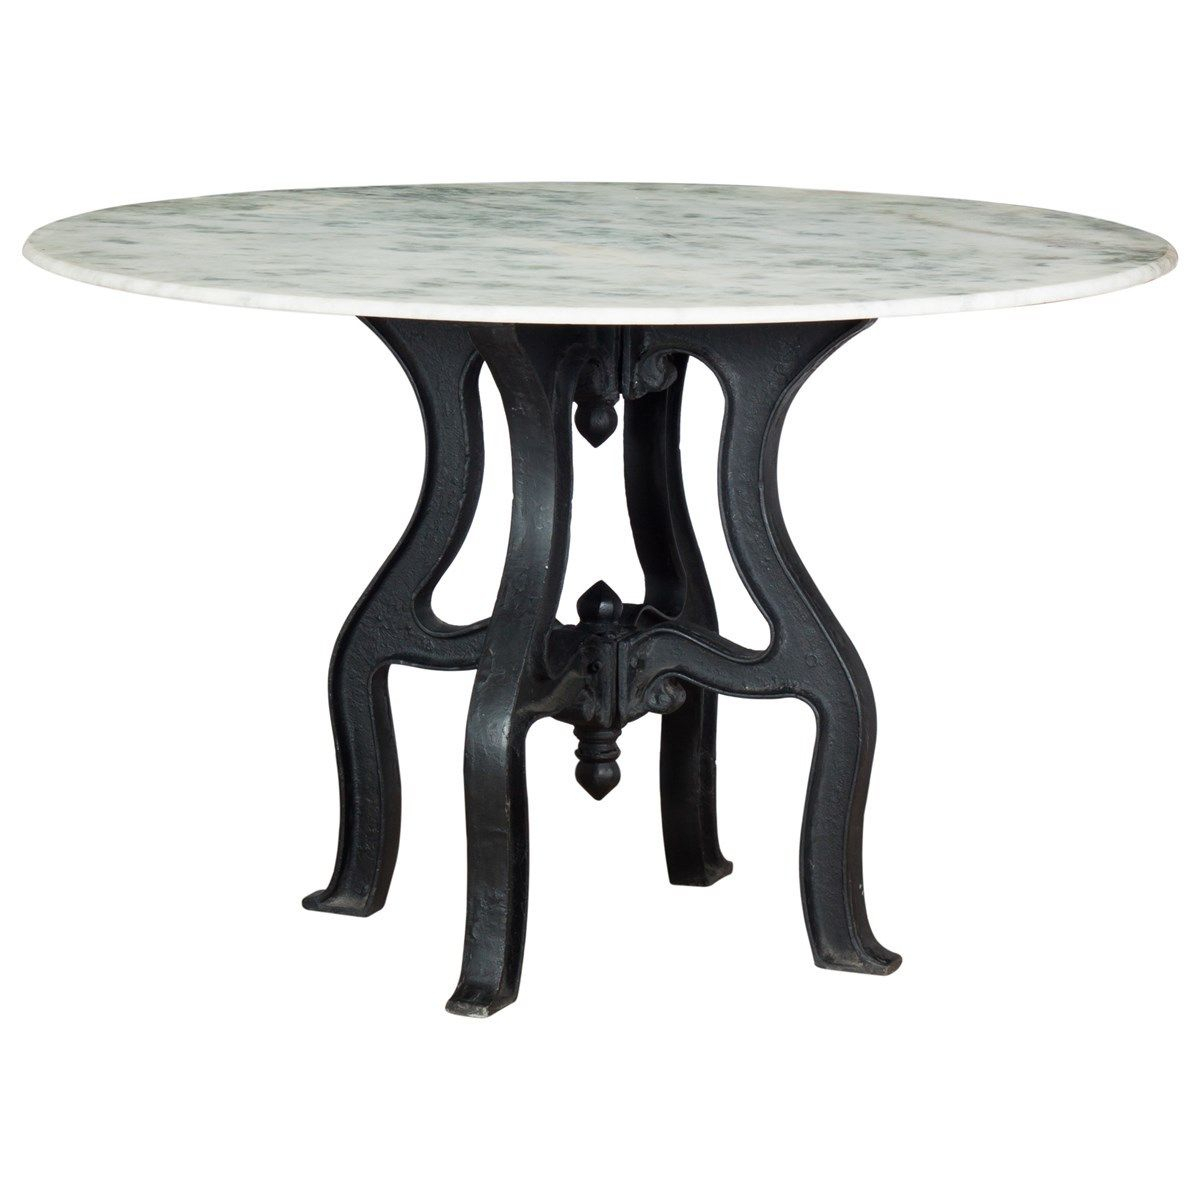 French Industrial White Marble Top Round Dining Table With 2017 Christie Round Marble Dining Tables (View 4 of 25)